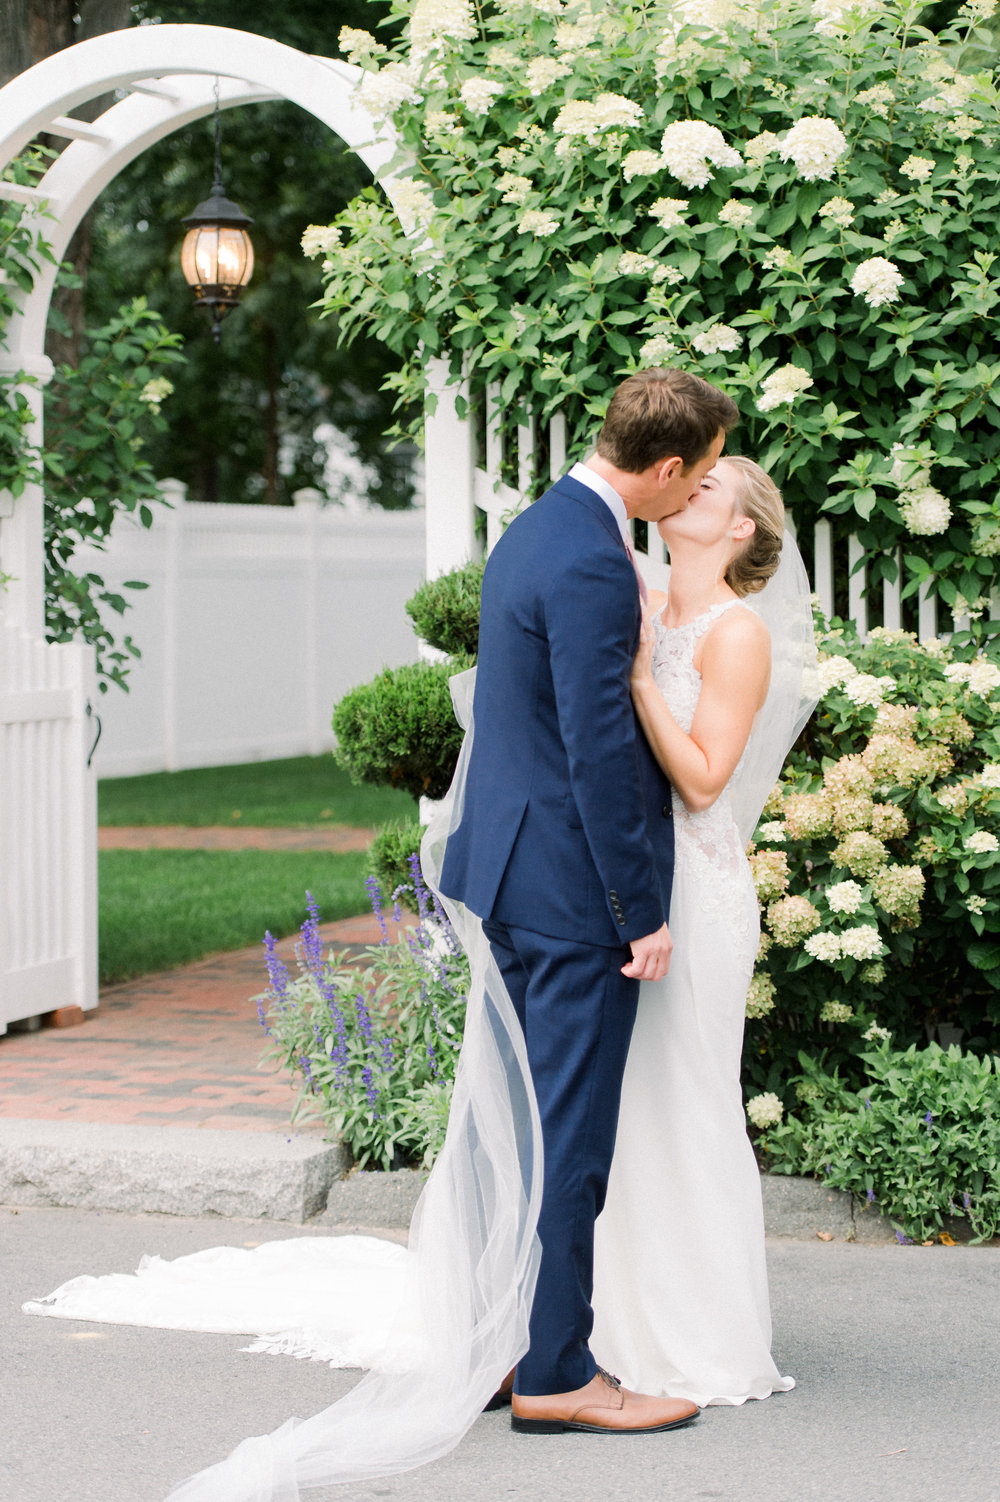 The Commons 1854 Topsfield MA wedding | Massachusetts wedding venue | Massachusetts wedding photography | couples portraits bride and groom | First look | North Shore MA Wedding photos